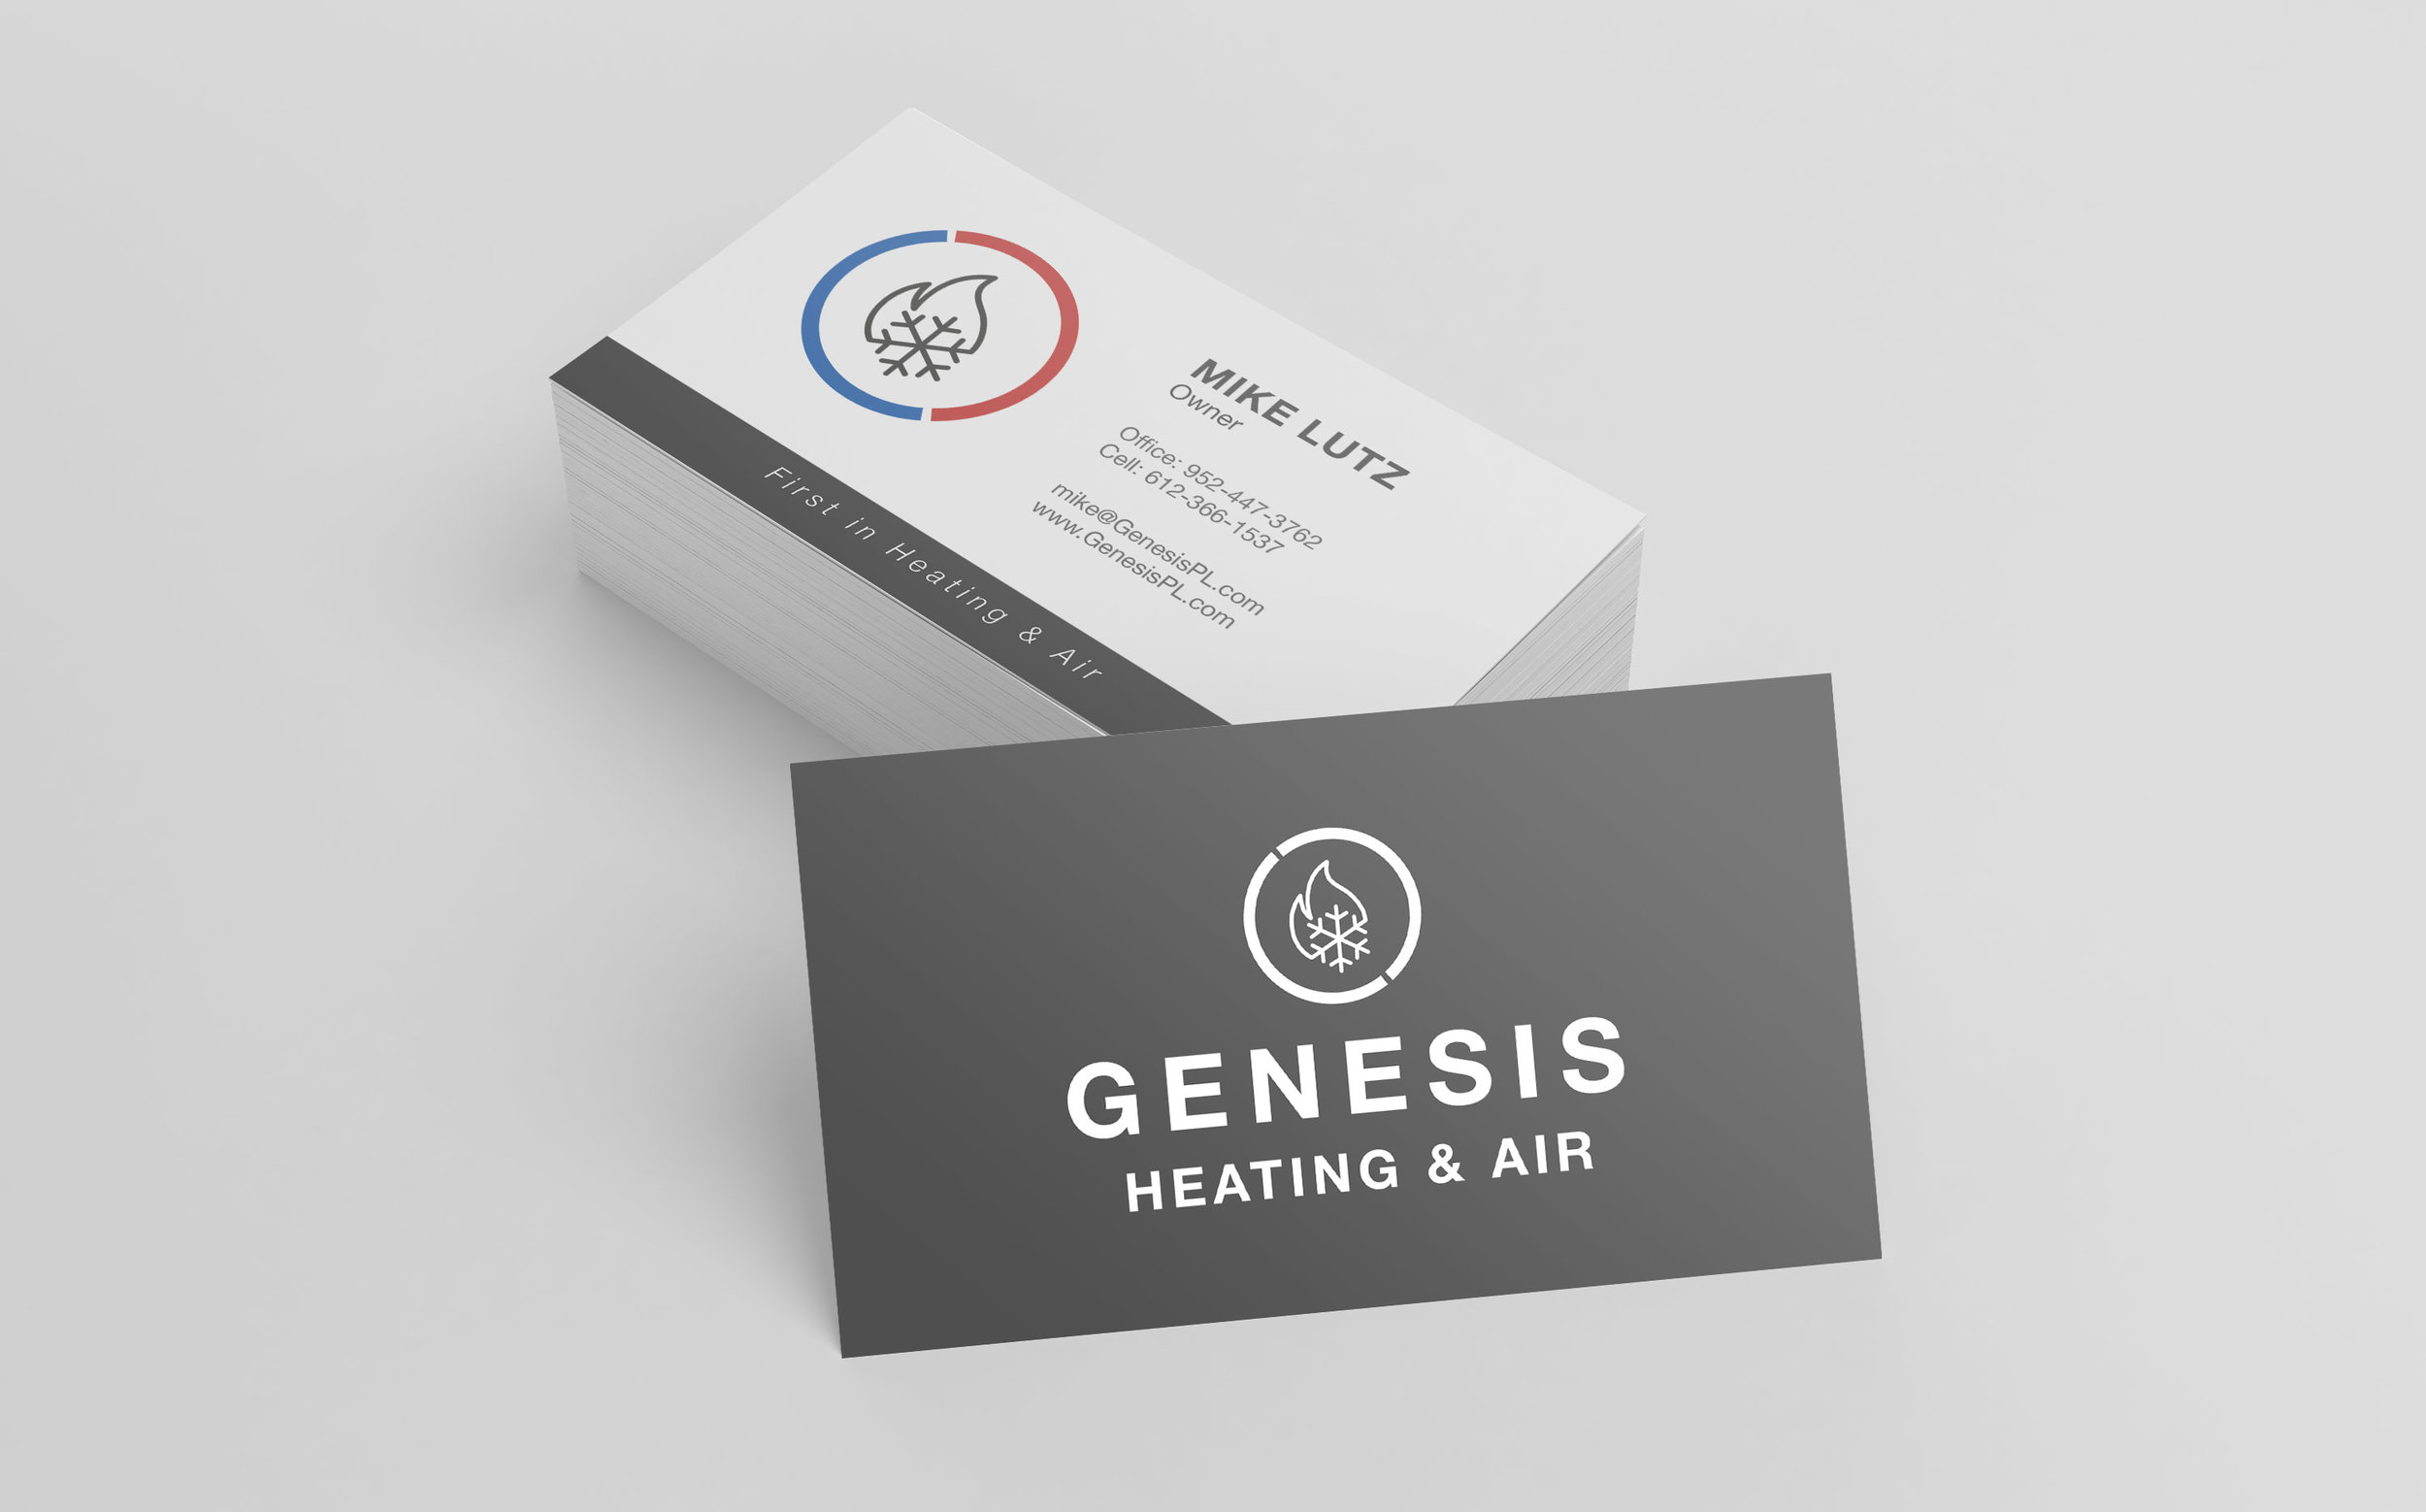 Genesis Heating & Air